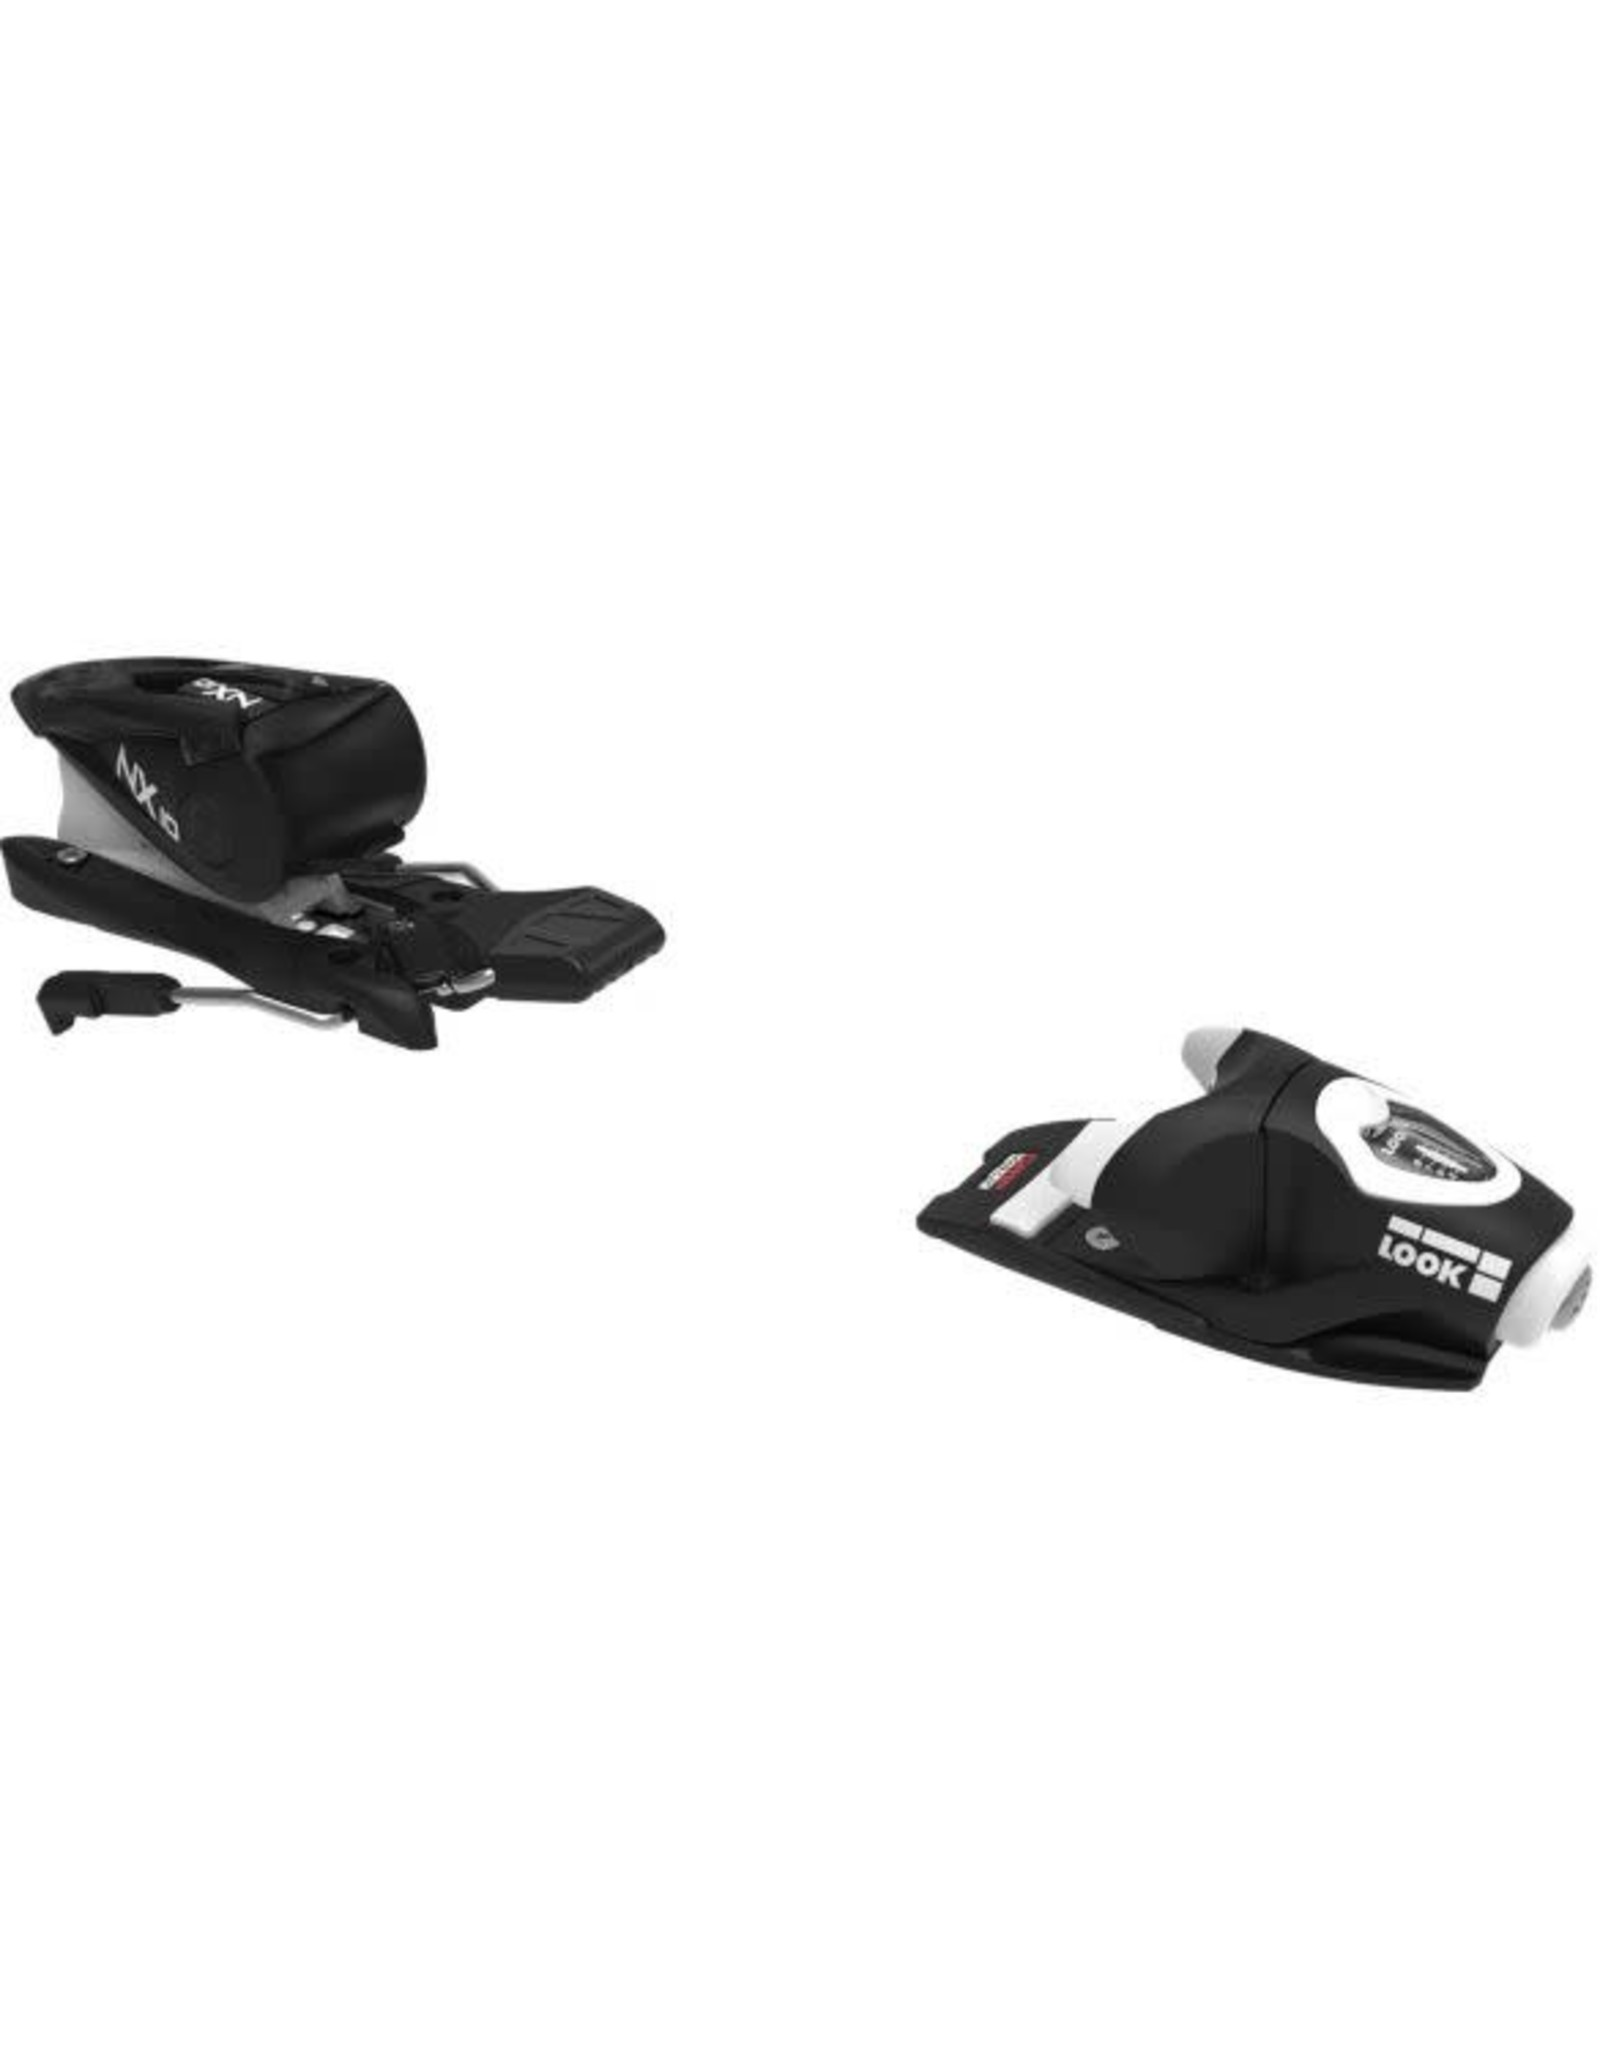 LOOK NX 10 B83 BK/WH ALL MOUNTAIN ALPINE SKI BINDINGS